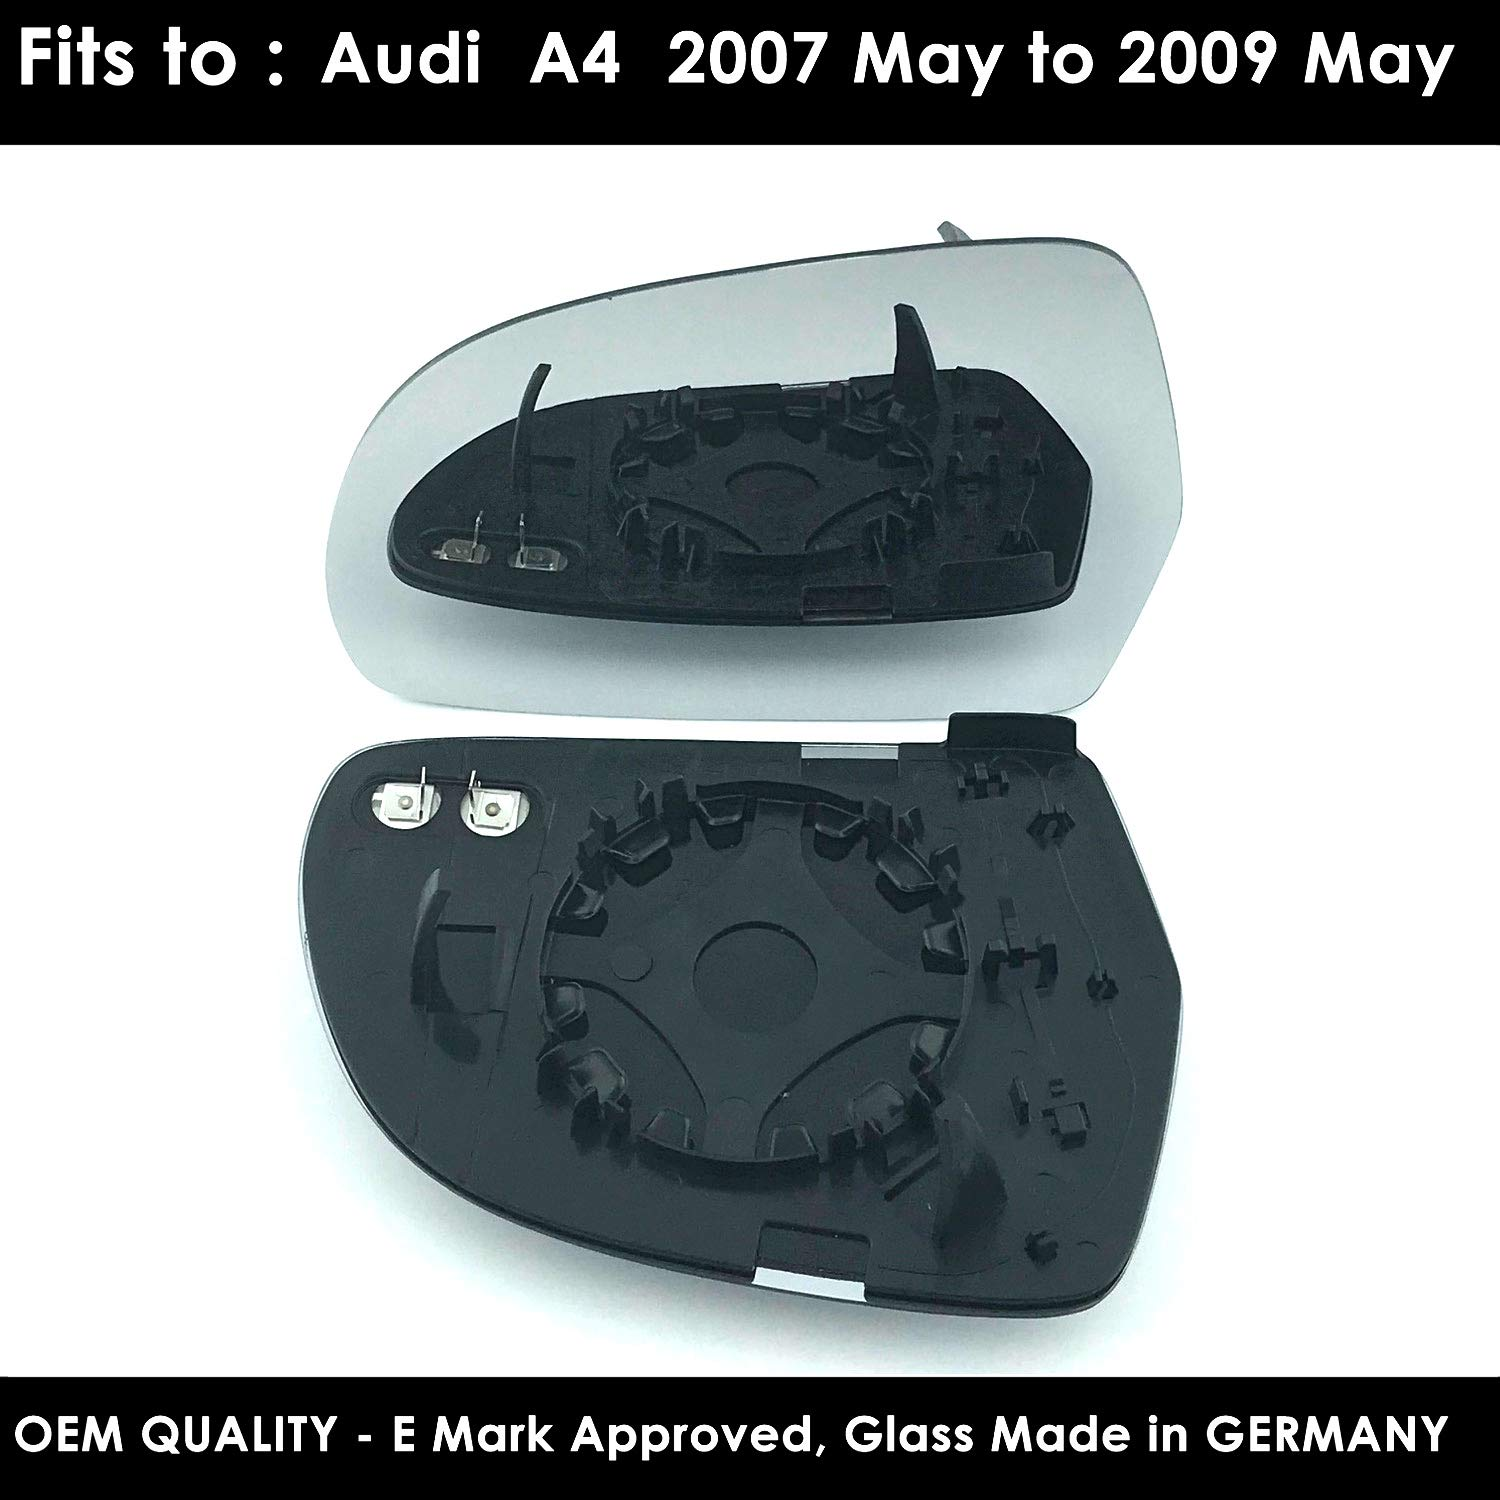 Audi A4 Door/Wing Mirror Glass Including Base Plate LH (Passenger Side)